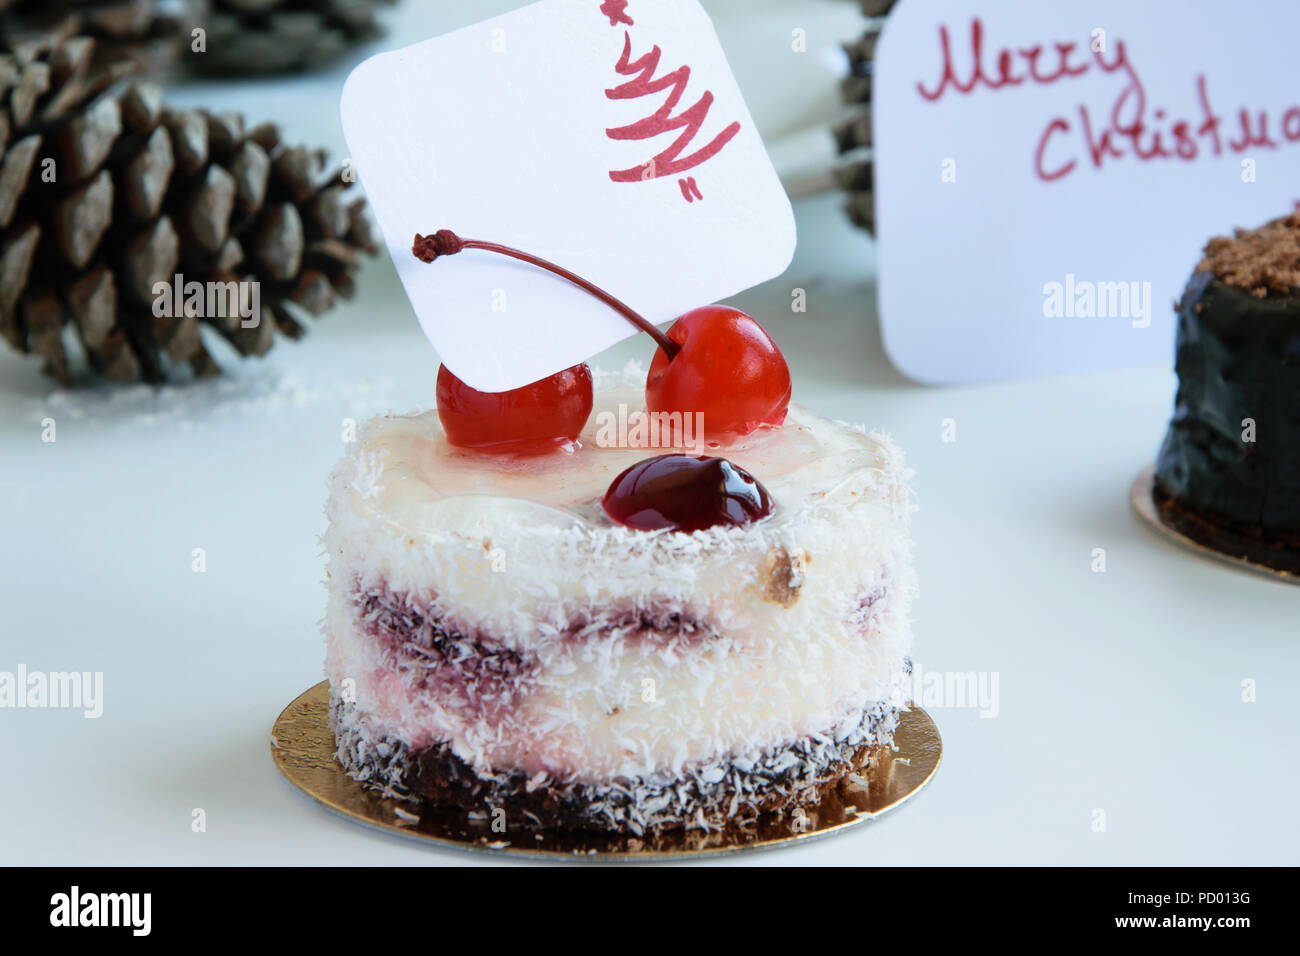 Winter Pastry Themes Delicious Cakes With Greeting Card On White